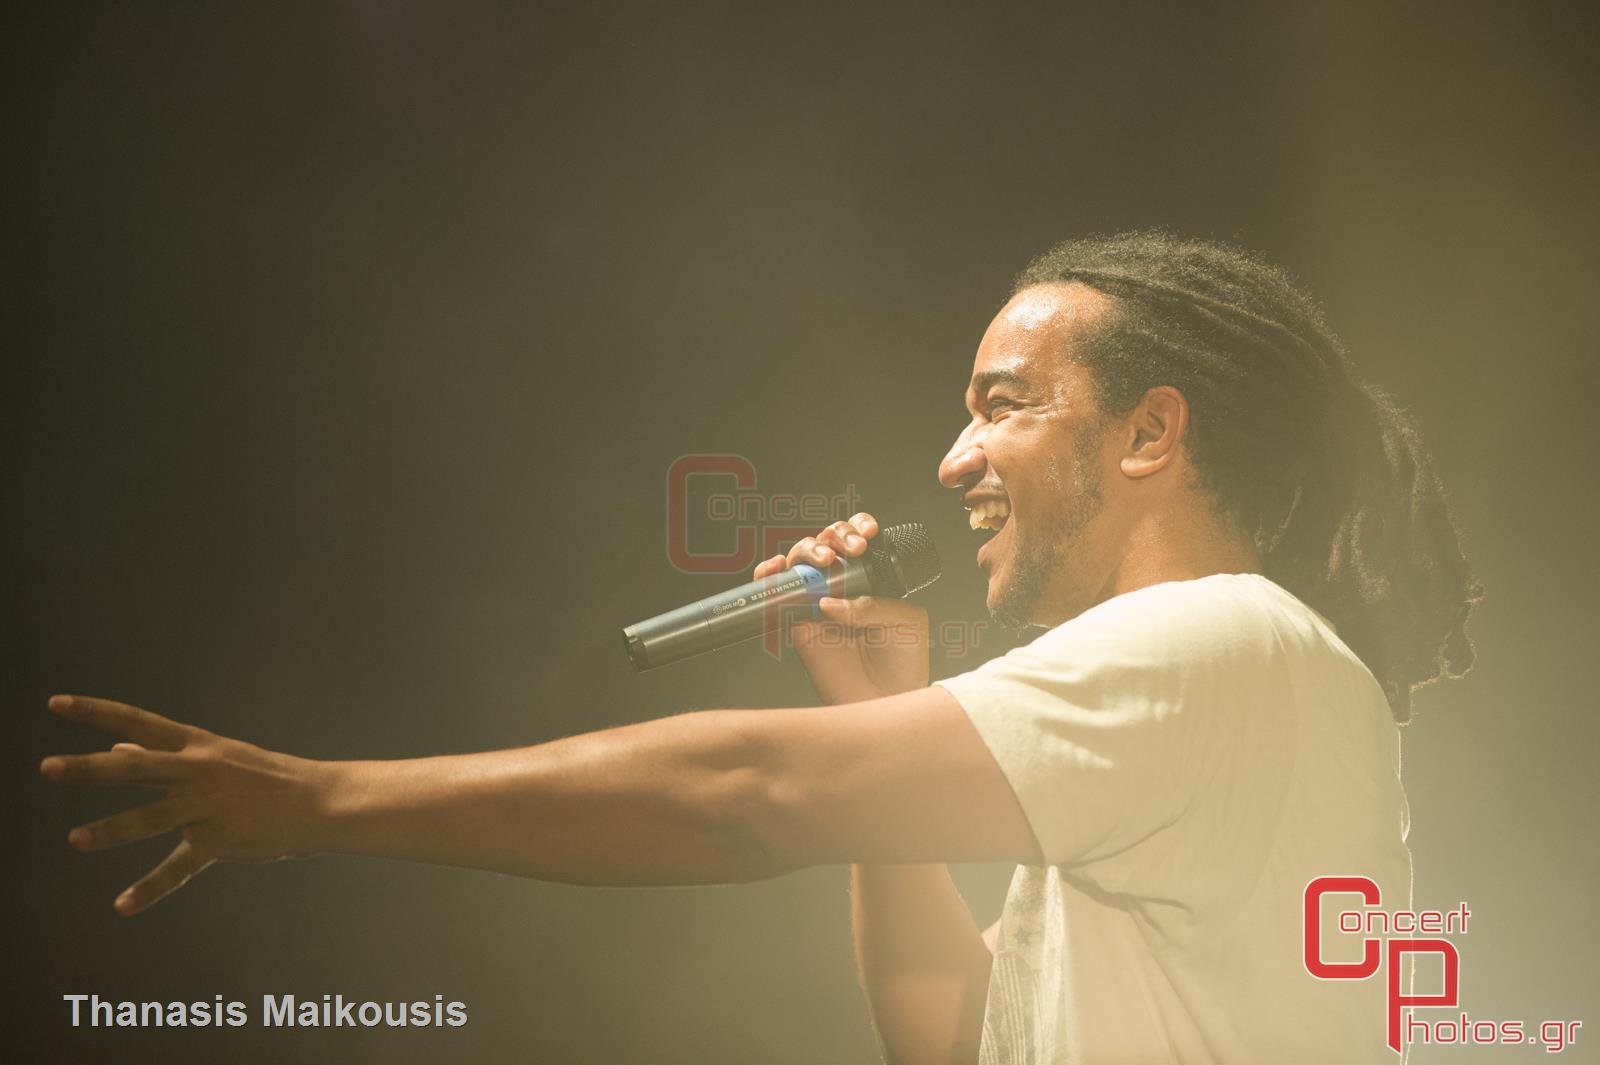 Dub Inc-Dub Inc photographer: Thanasis Maikousis - concertphotos_-5465